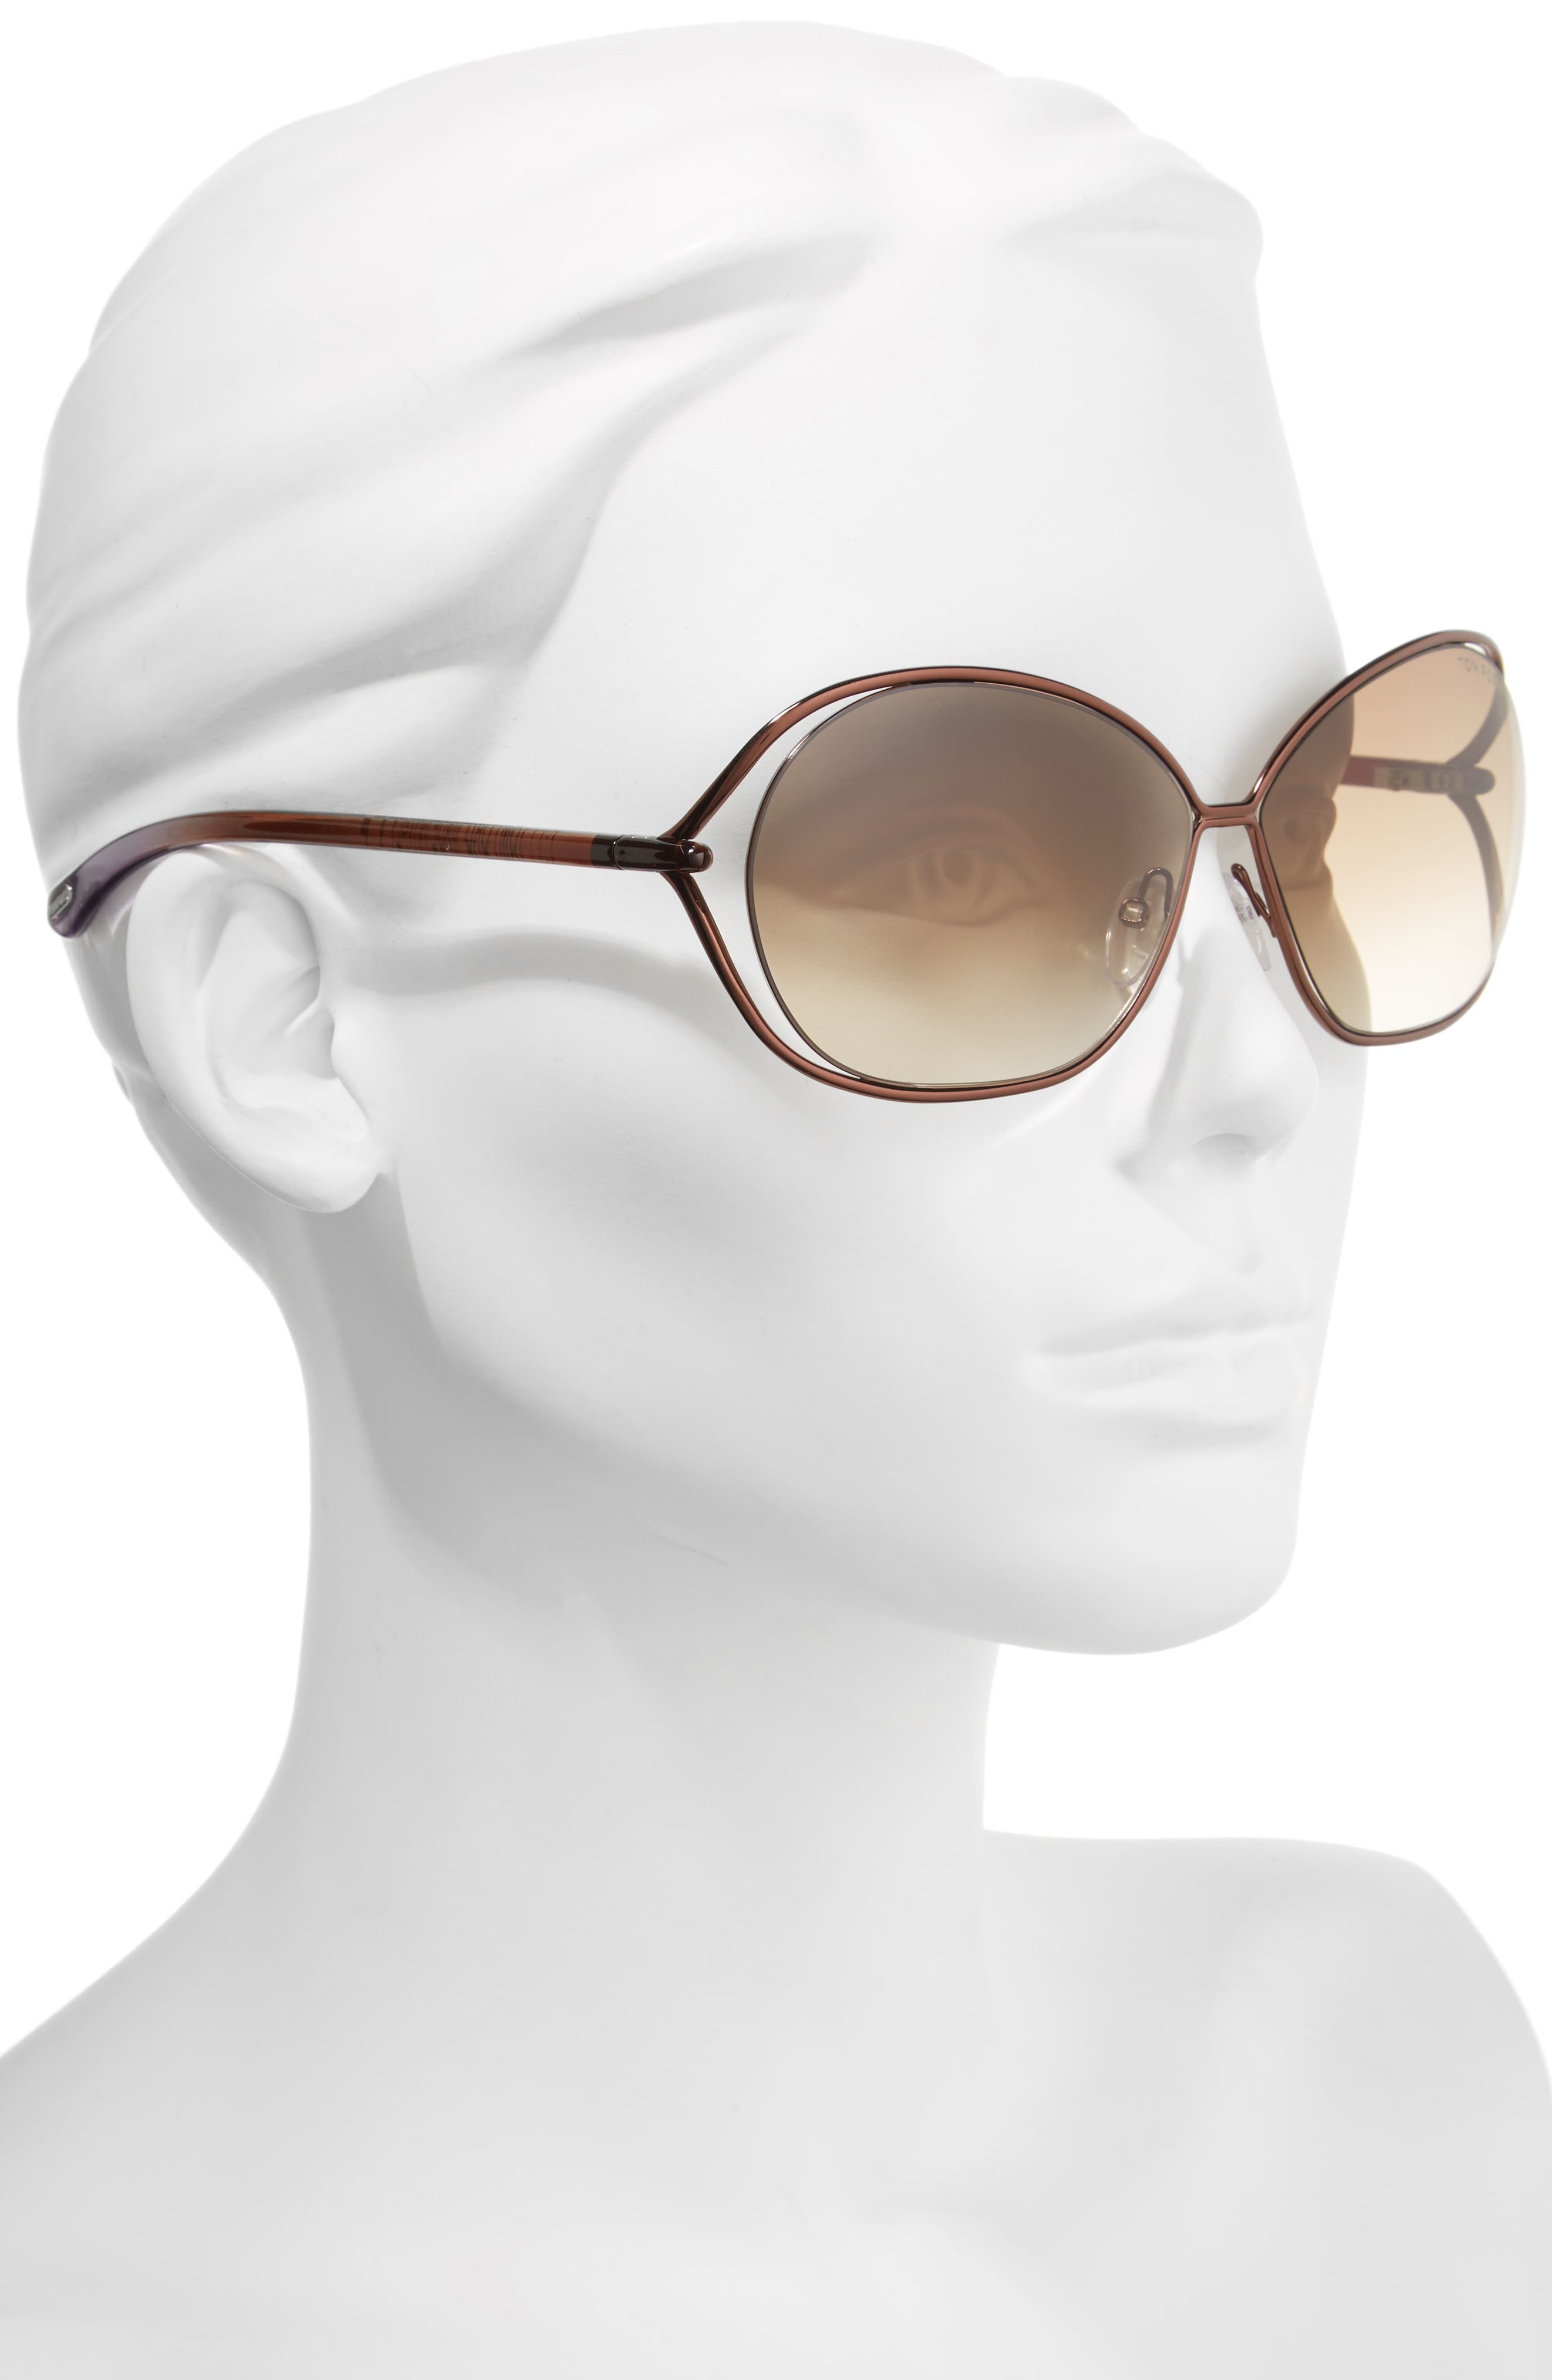 Carla 66mm Oversized Round Metal Sunglasses,                             Alternate thumbnail 3, color,                             BROWN/ BROWN